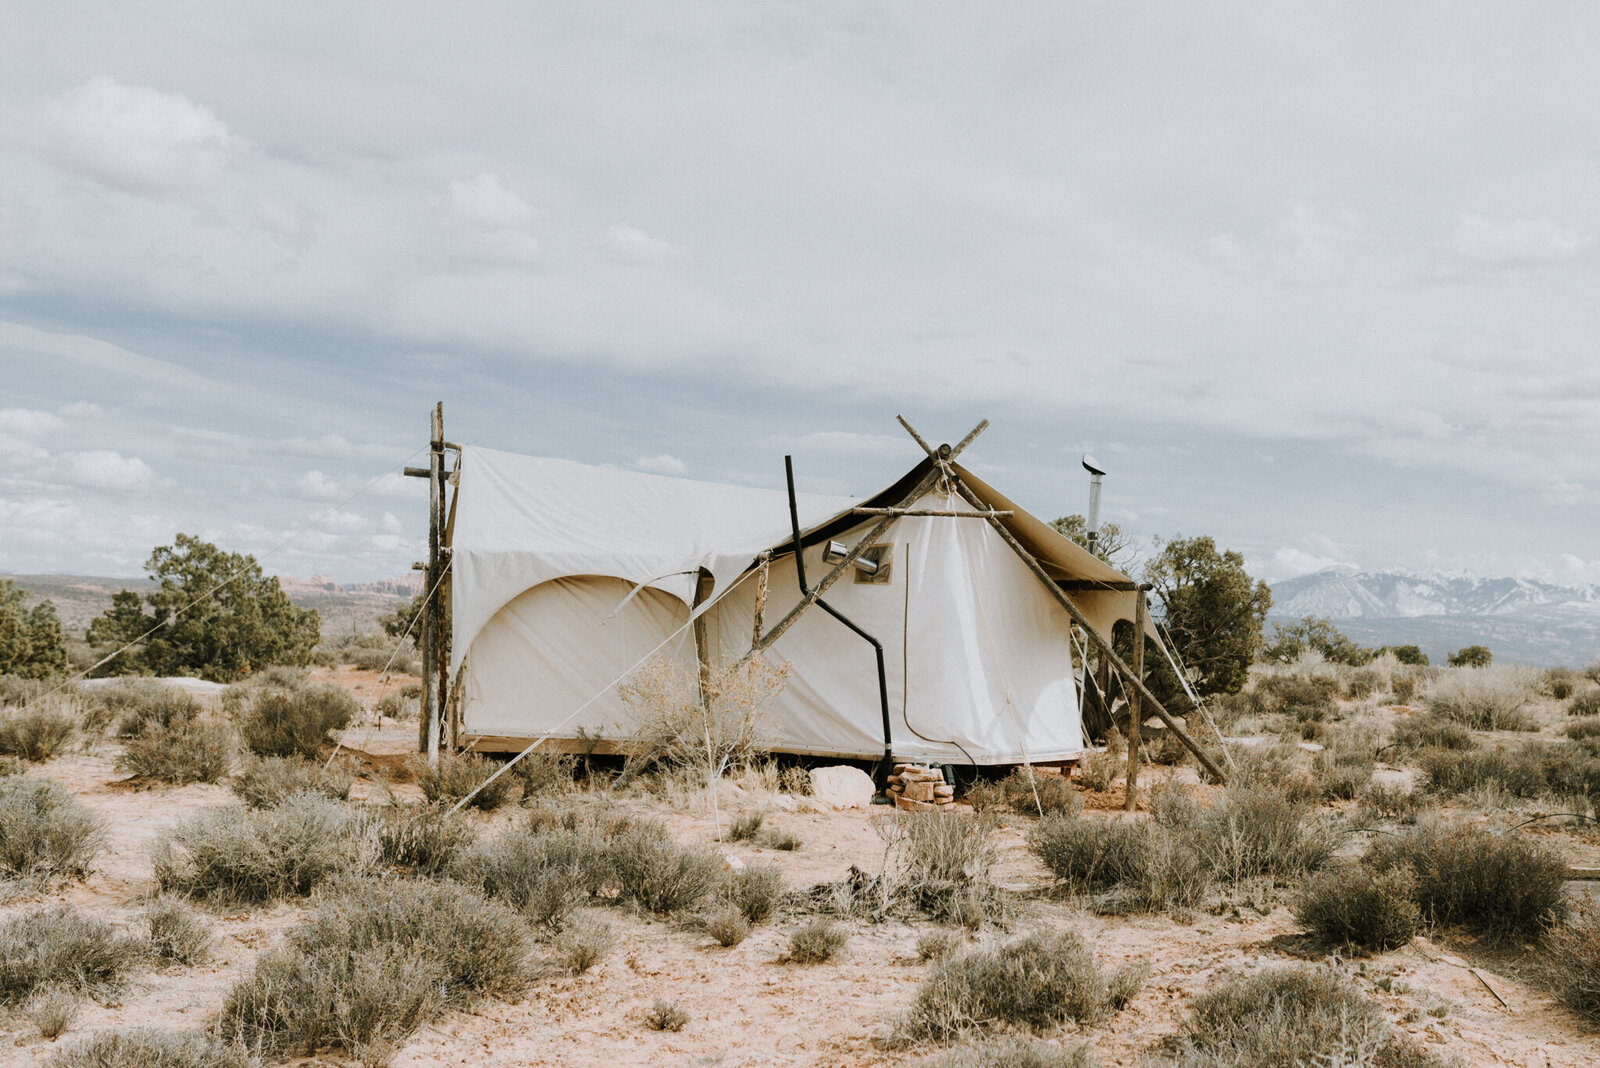 under-canvas-moab-4036